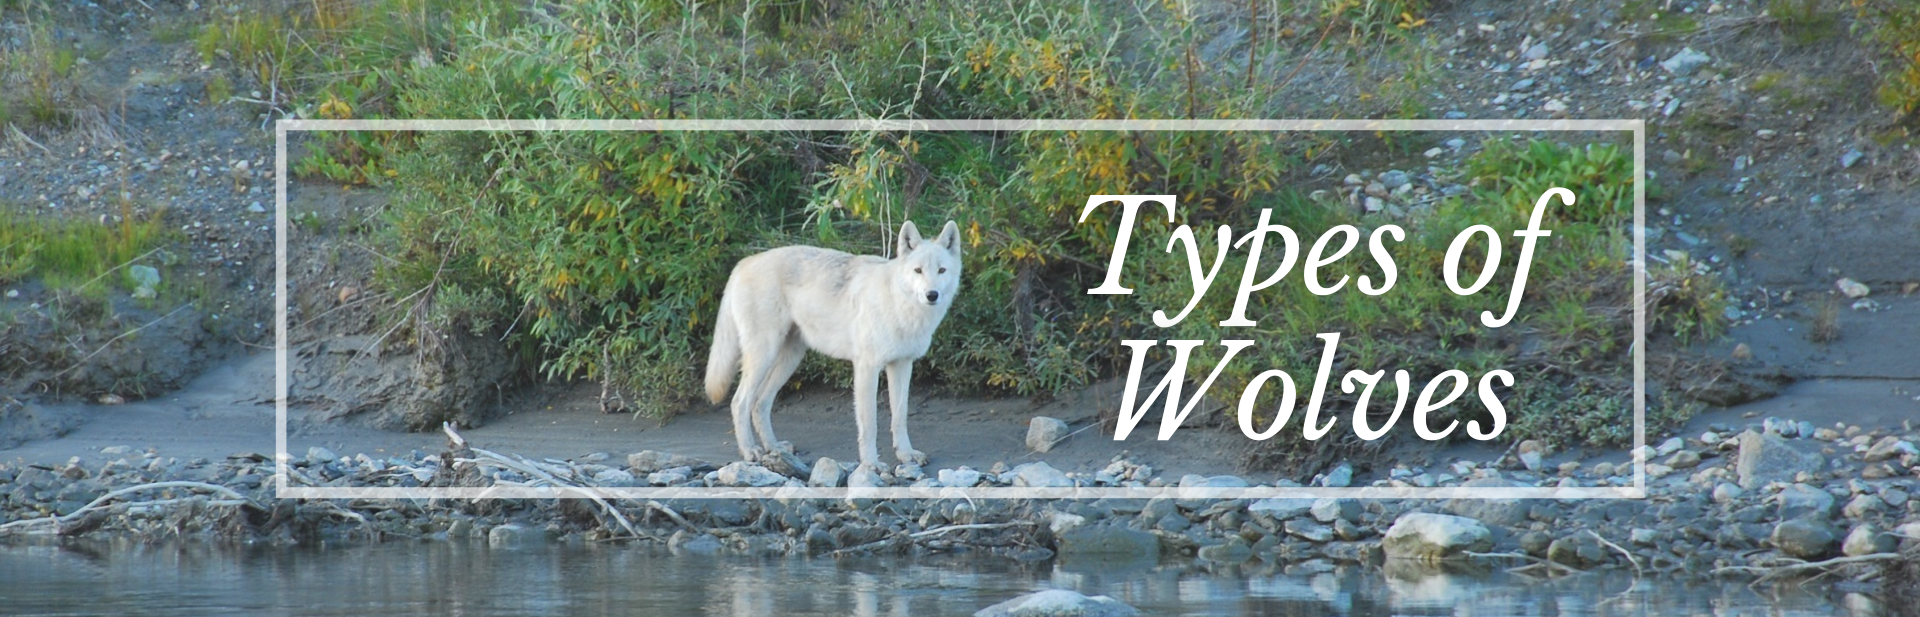 27 Wonderful Types of Wolves (Facts, Photos & More)